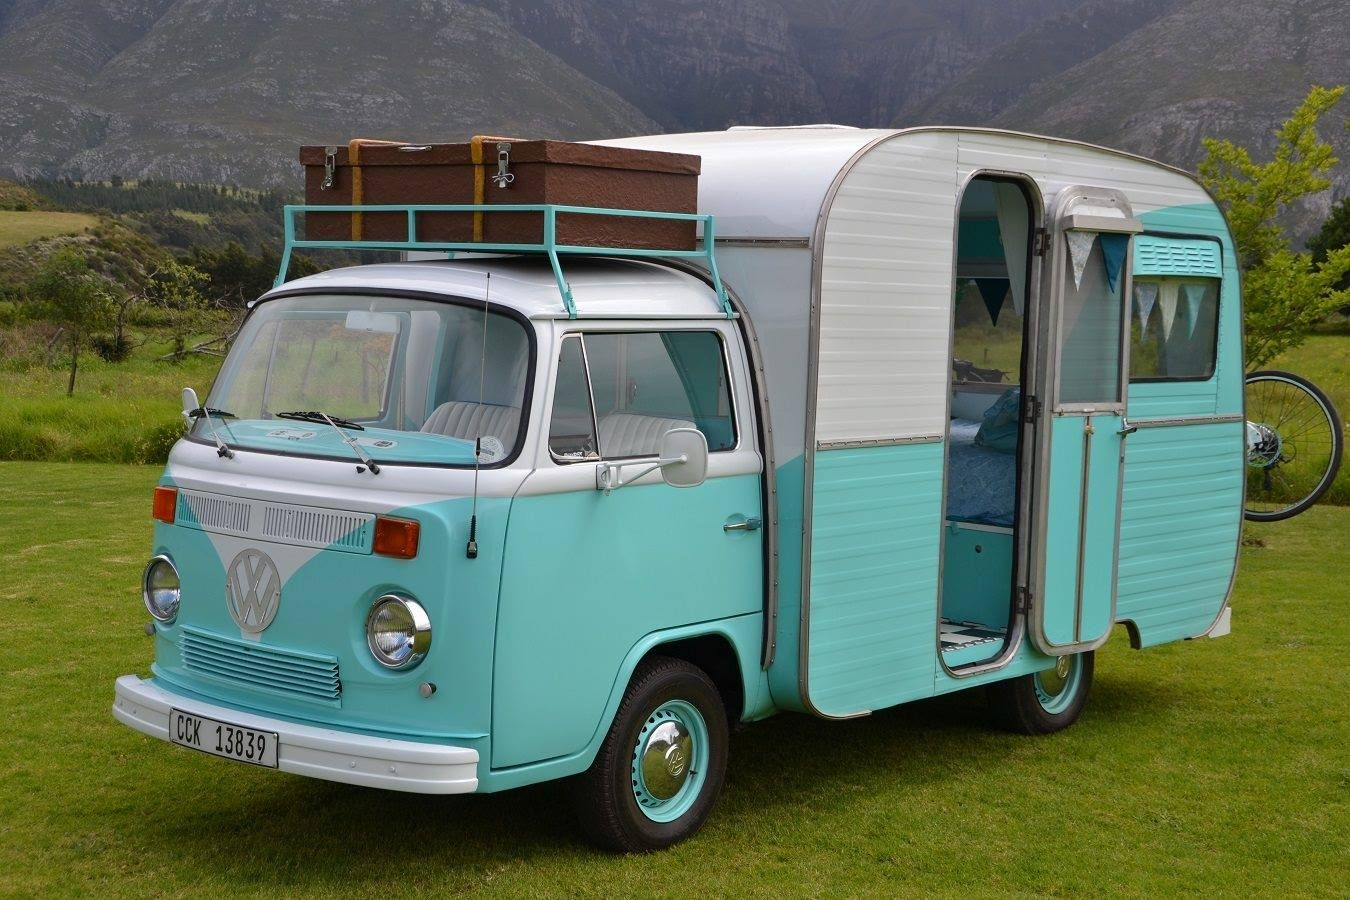 This camper is called a VW Autovilla and was made in the 70's by a South African company called Jurgens. This is a 1976 model.